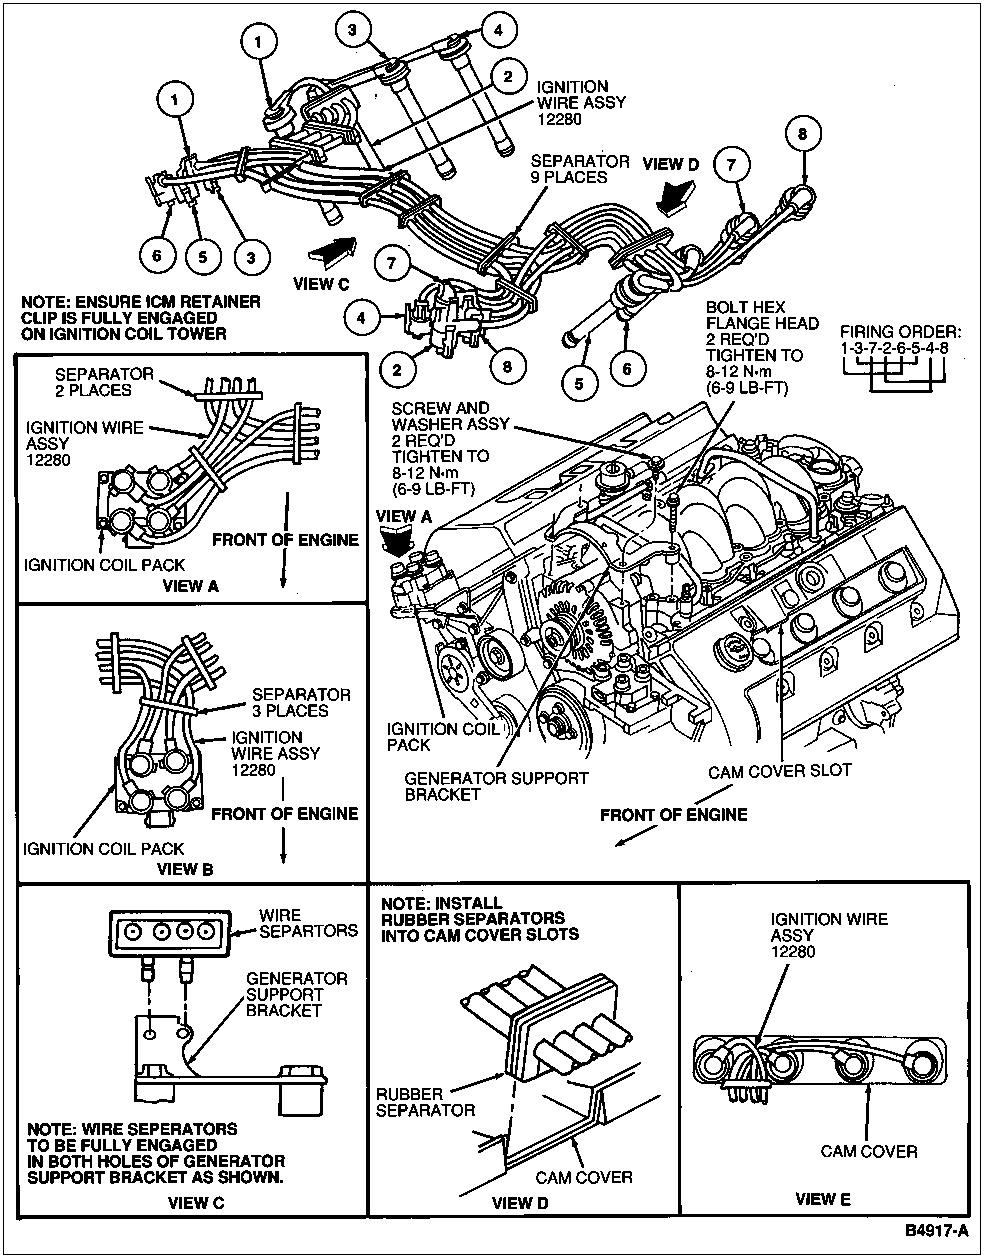 2004 Ford Explorer Air Bag Sensor Location as well 1998 Ford Windstar Engine Removal furthermore Ford Explorer Mk2 Fuse Boc Diagram Usa Version moreover 2001 Lincoln Navigator Battery Location further 4w1q2 Lincoln Navigator Ultimate 04 Navigator Cruise Not Working. on ignition wiring diagram for a 2007 lincoln mkz